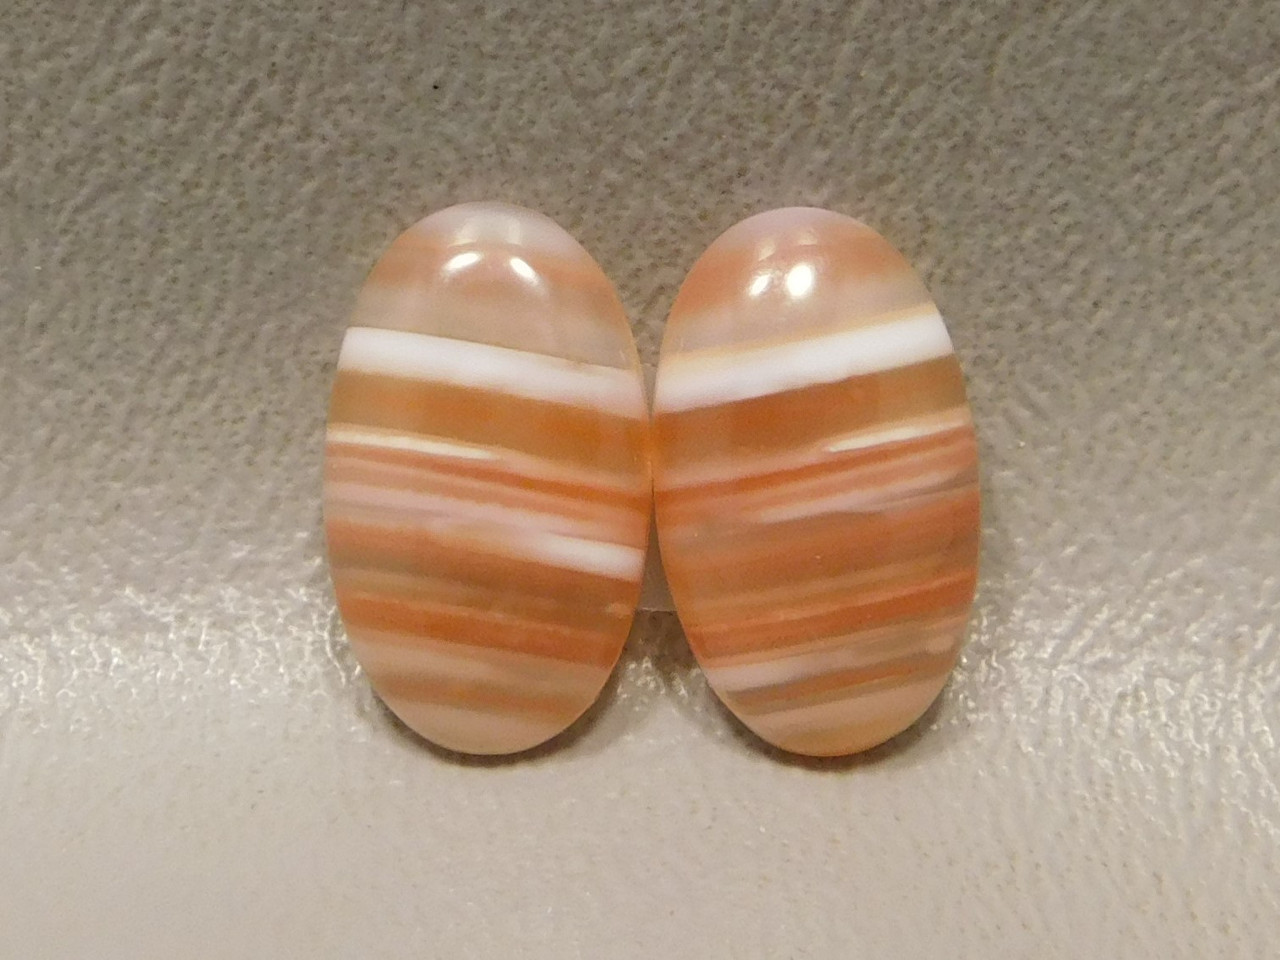 Cabochons Stones Orange Carnelian Agate Matched Pairs #16